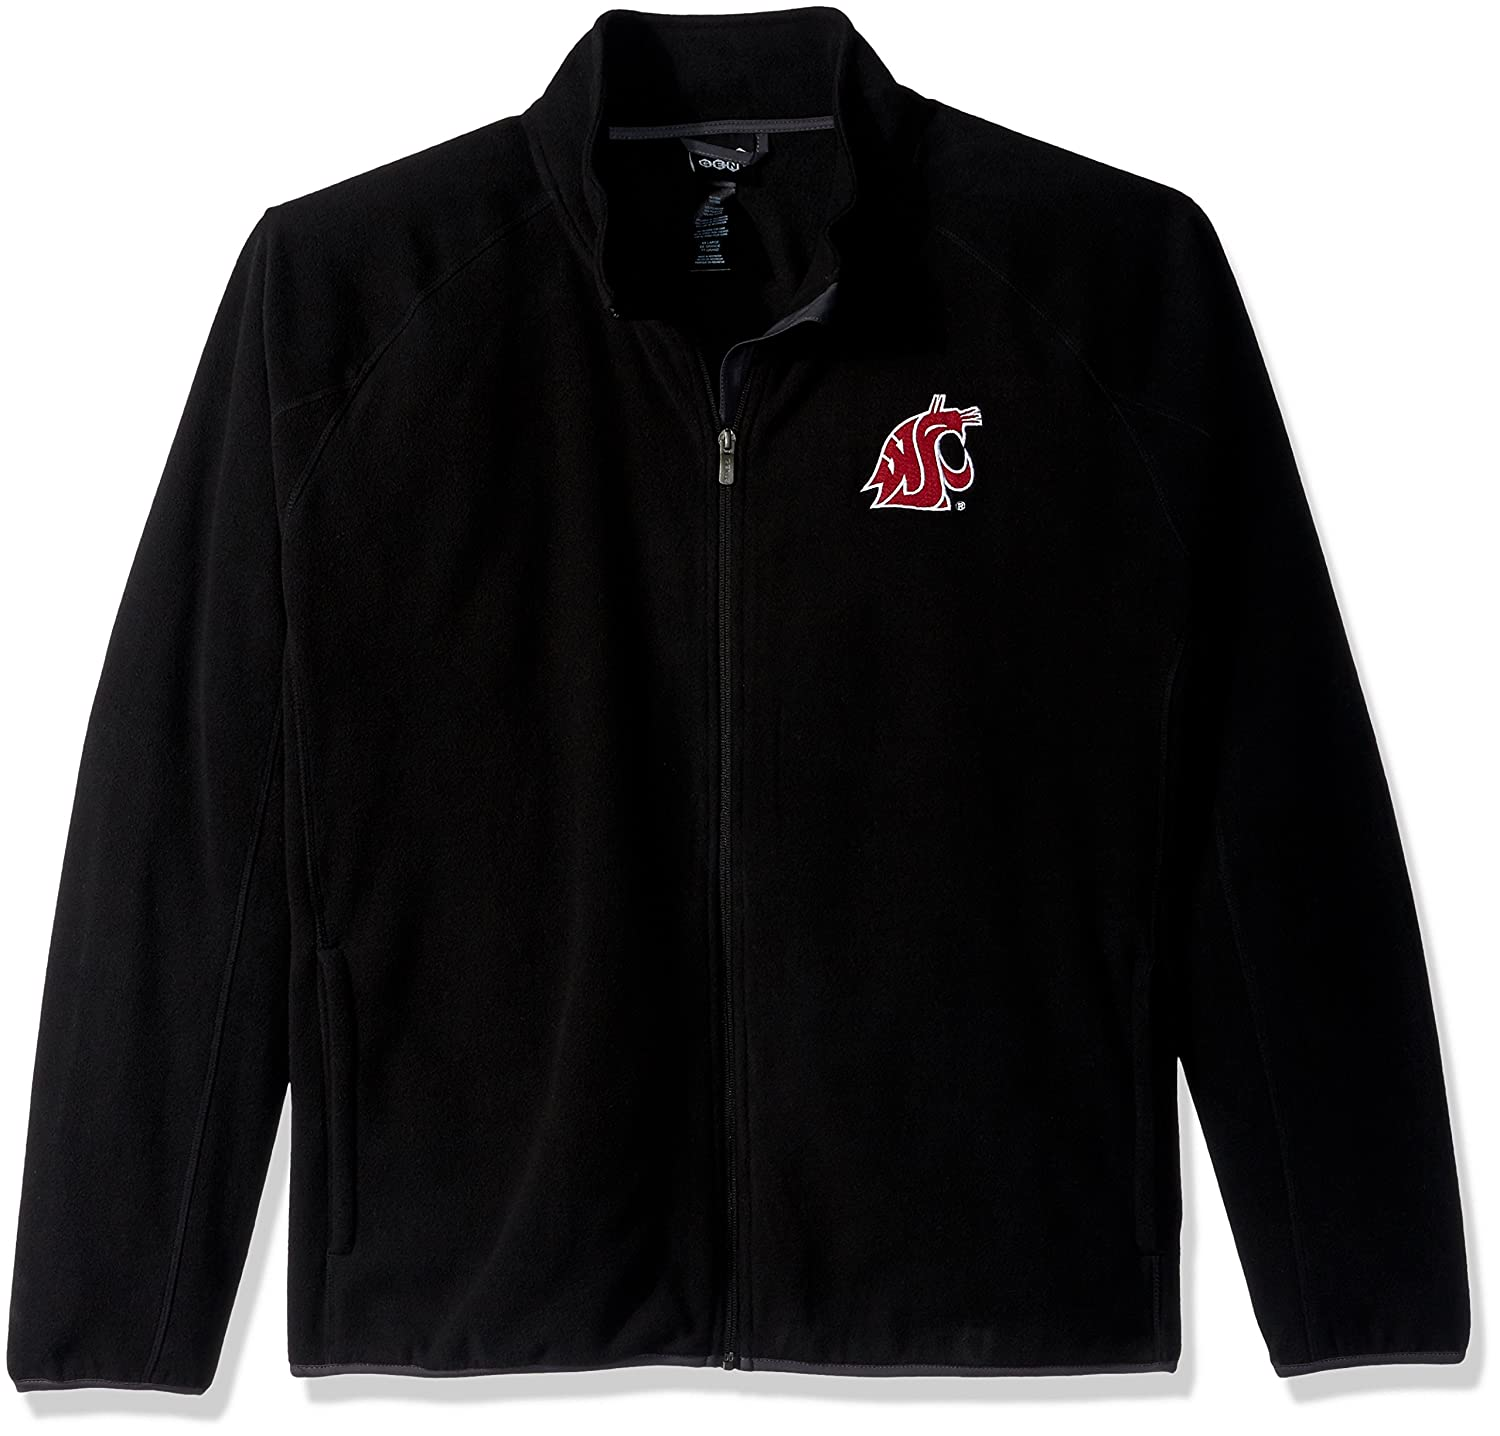 NCAA Washington State Cougars Mens  Outerstuff Scrimmage Full Zip Jacket Black Large